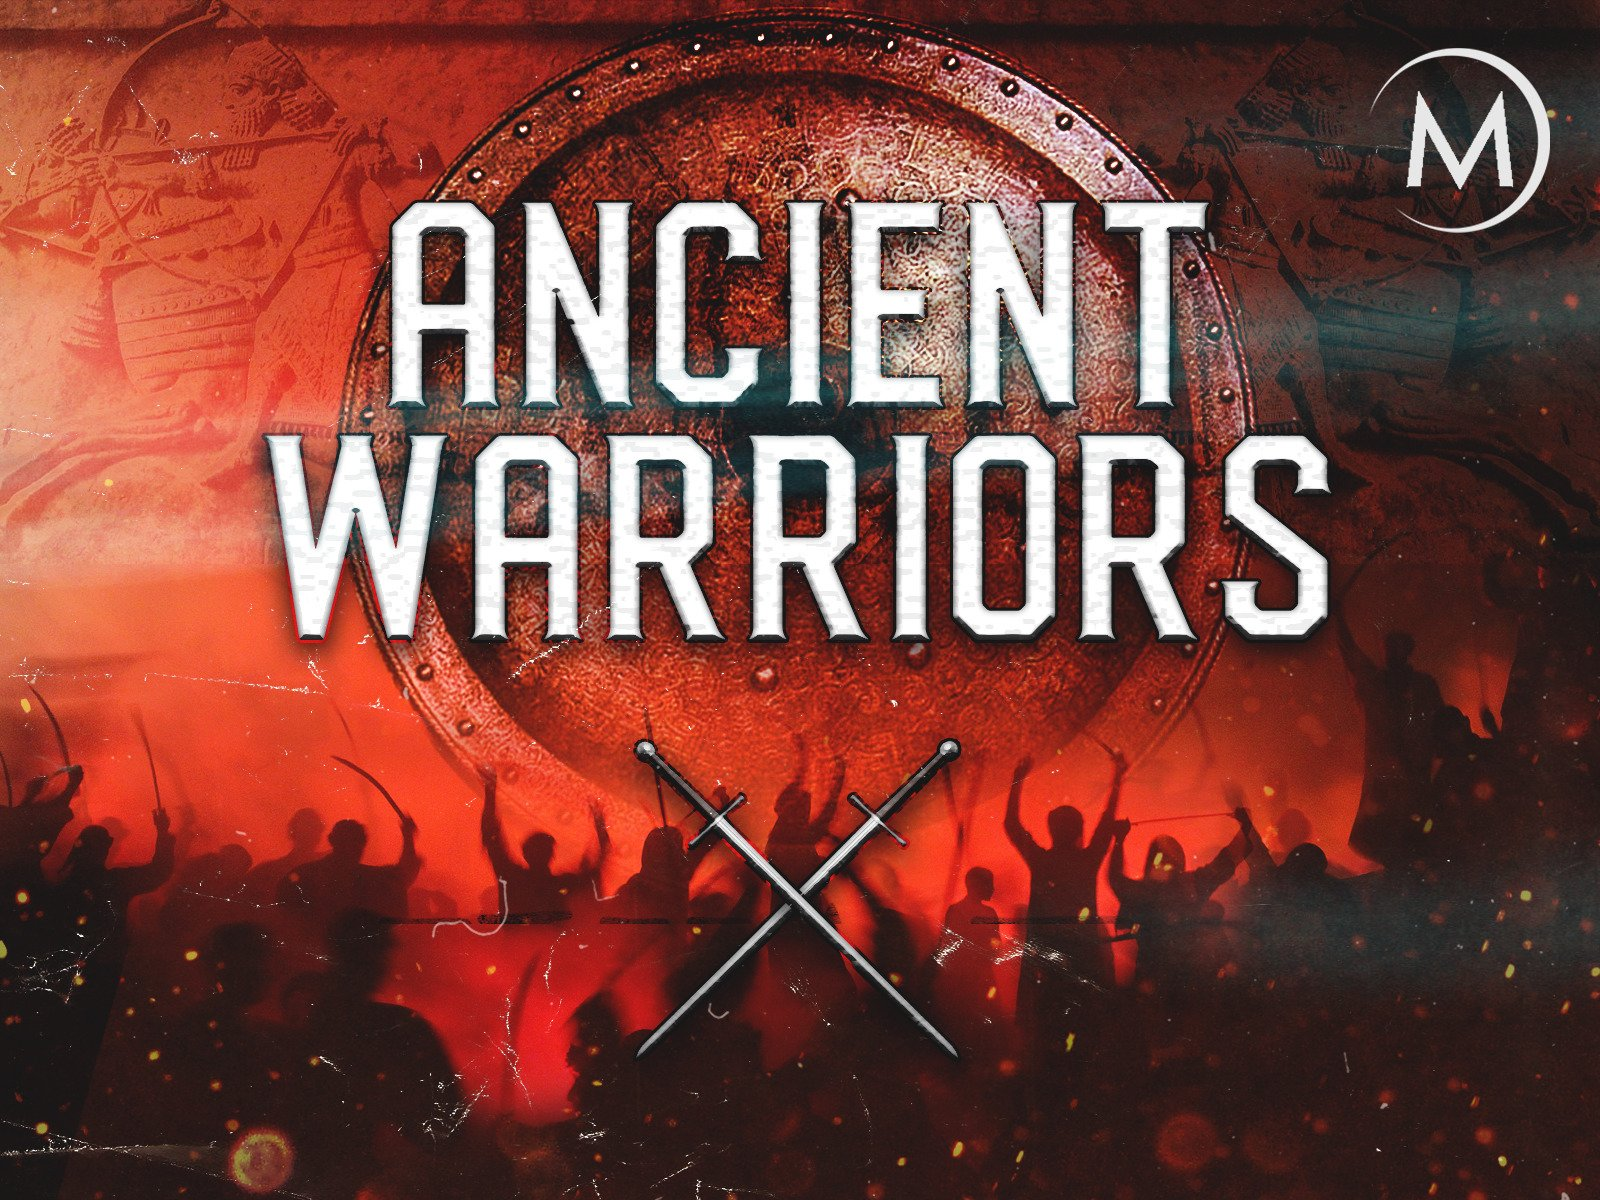 Amazon.com: Watch Ancient Warriors | Prime Video